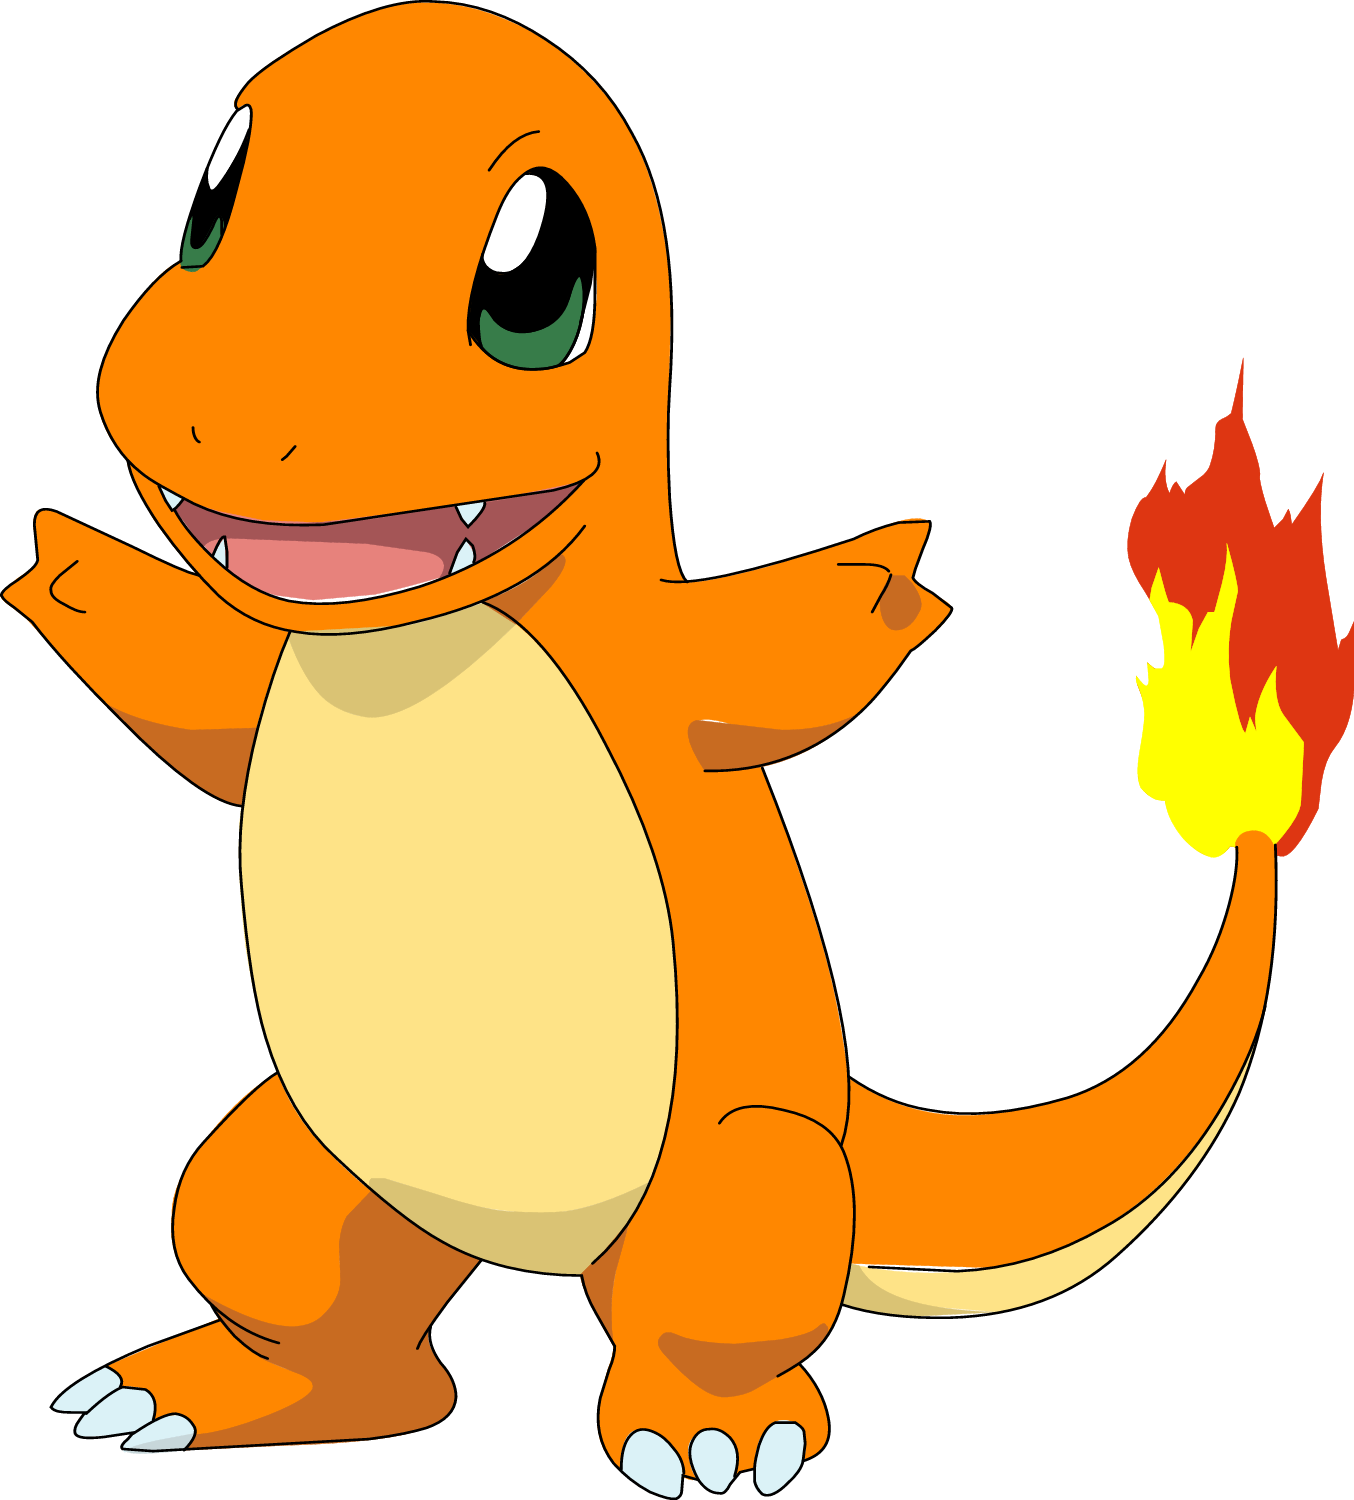 Charmander go jokingart com. Pokeball clipart face pokemon